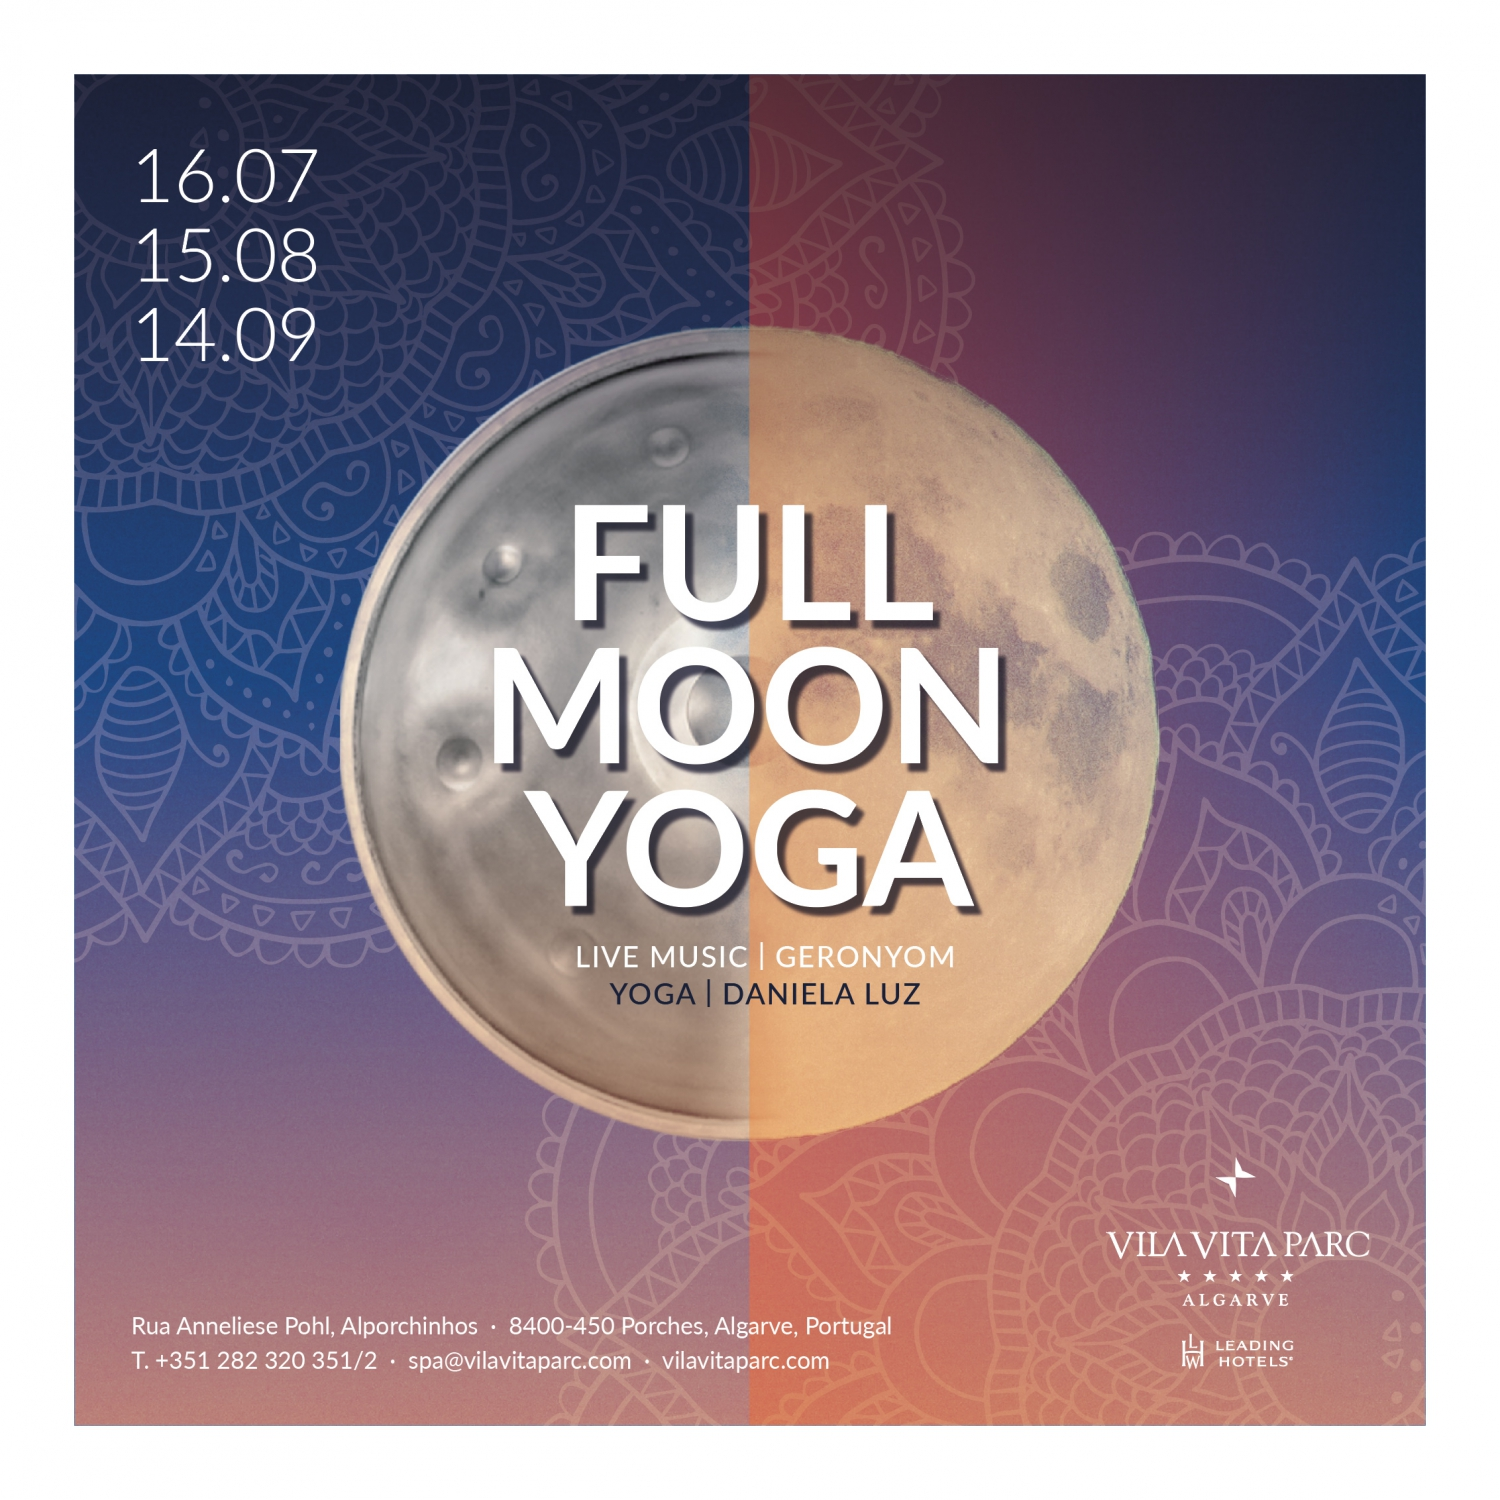 Full Moon Yoga at VILA VITA Parc